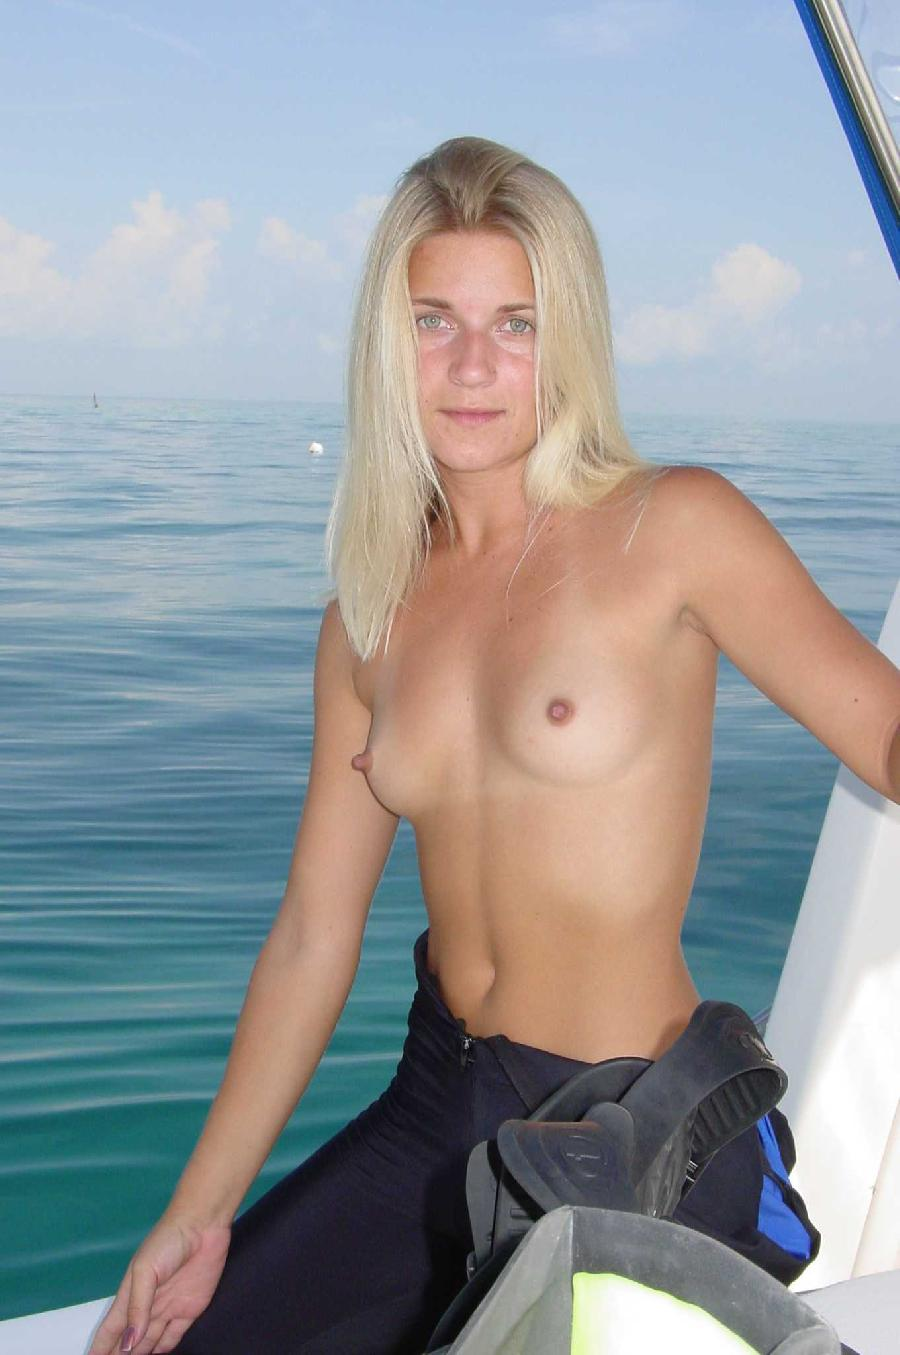 Sexy blonde and her holiday on boat - 9